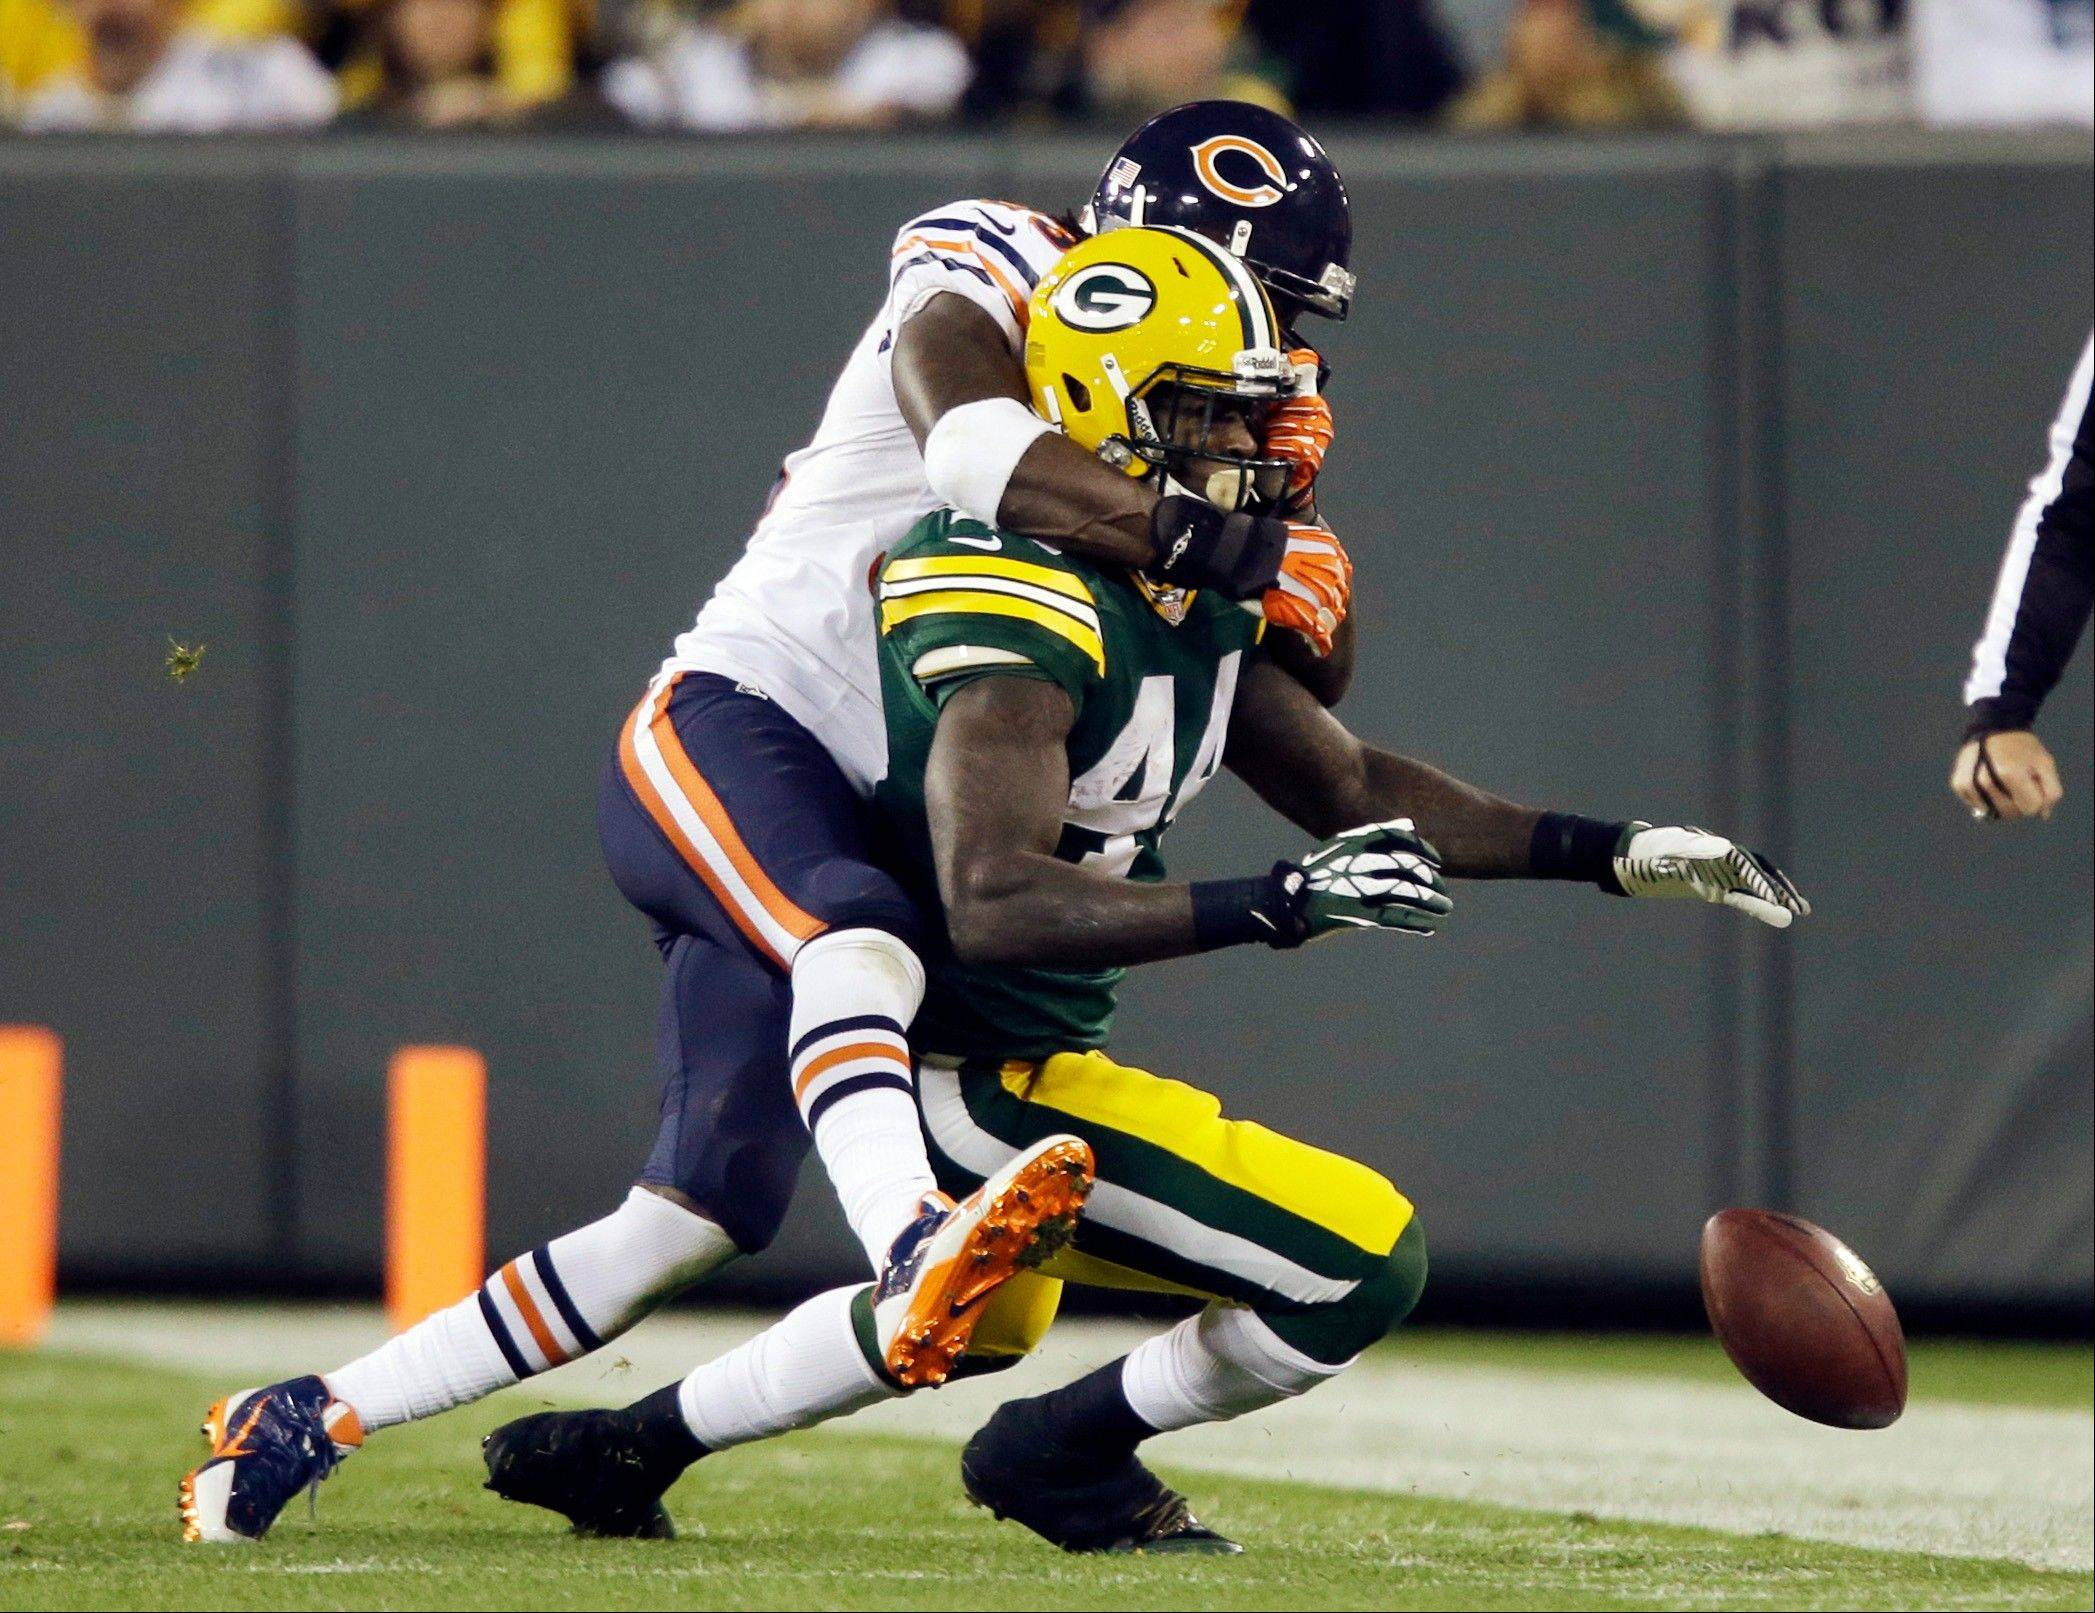 Green Bay Packers' James Starks fumbles out of bounds as he is hit by Chicago Bears' Charles Tillman during the first half of an NFL football game Monday in Green Bay, Wis.